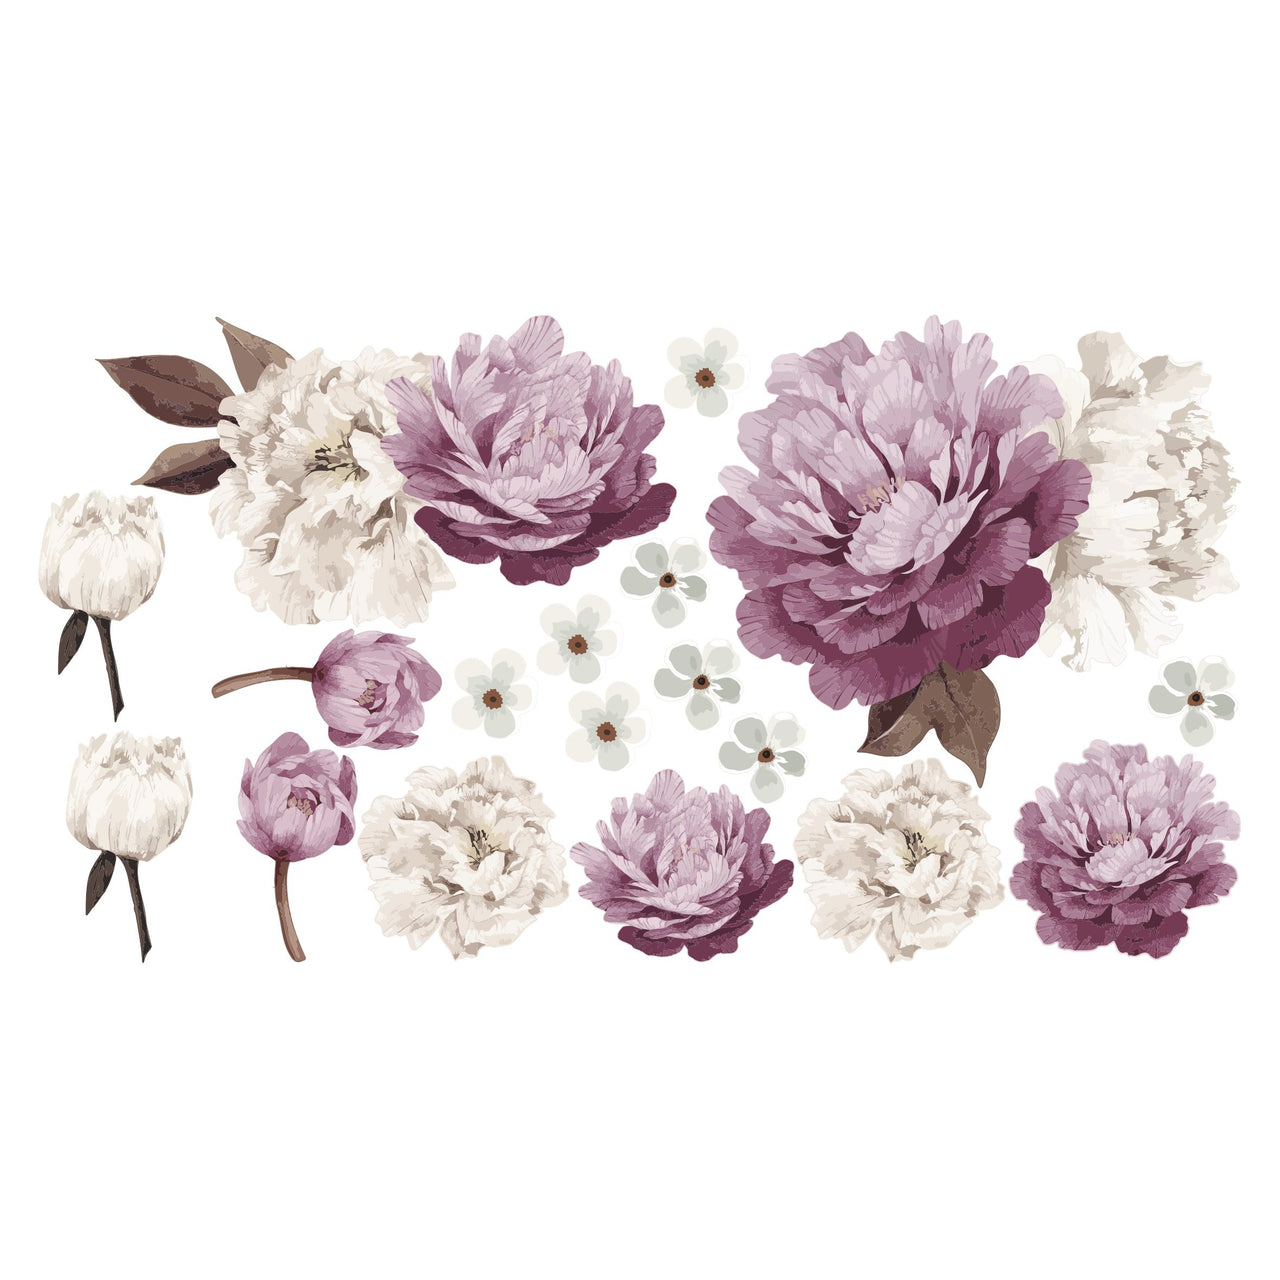 Peony flower Set - Individual cut out flowers.